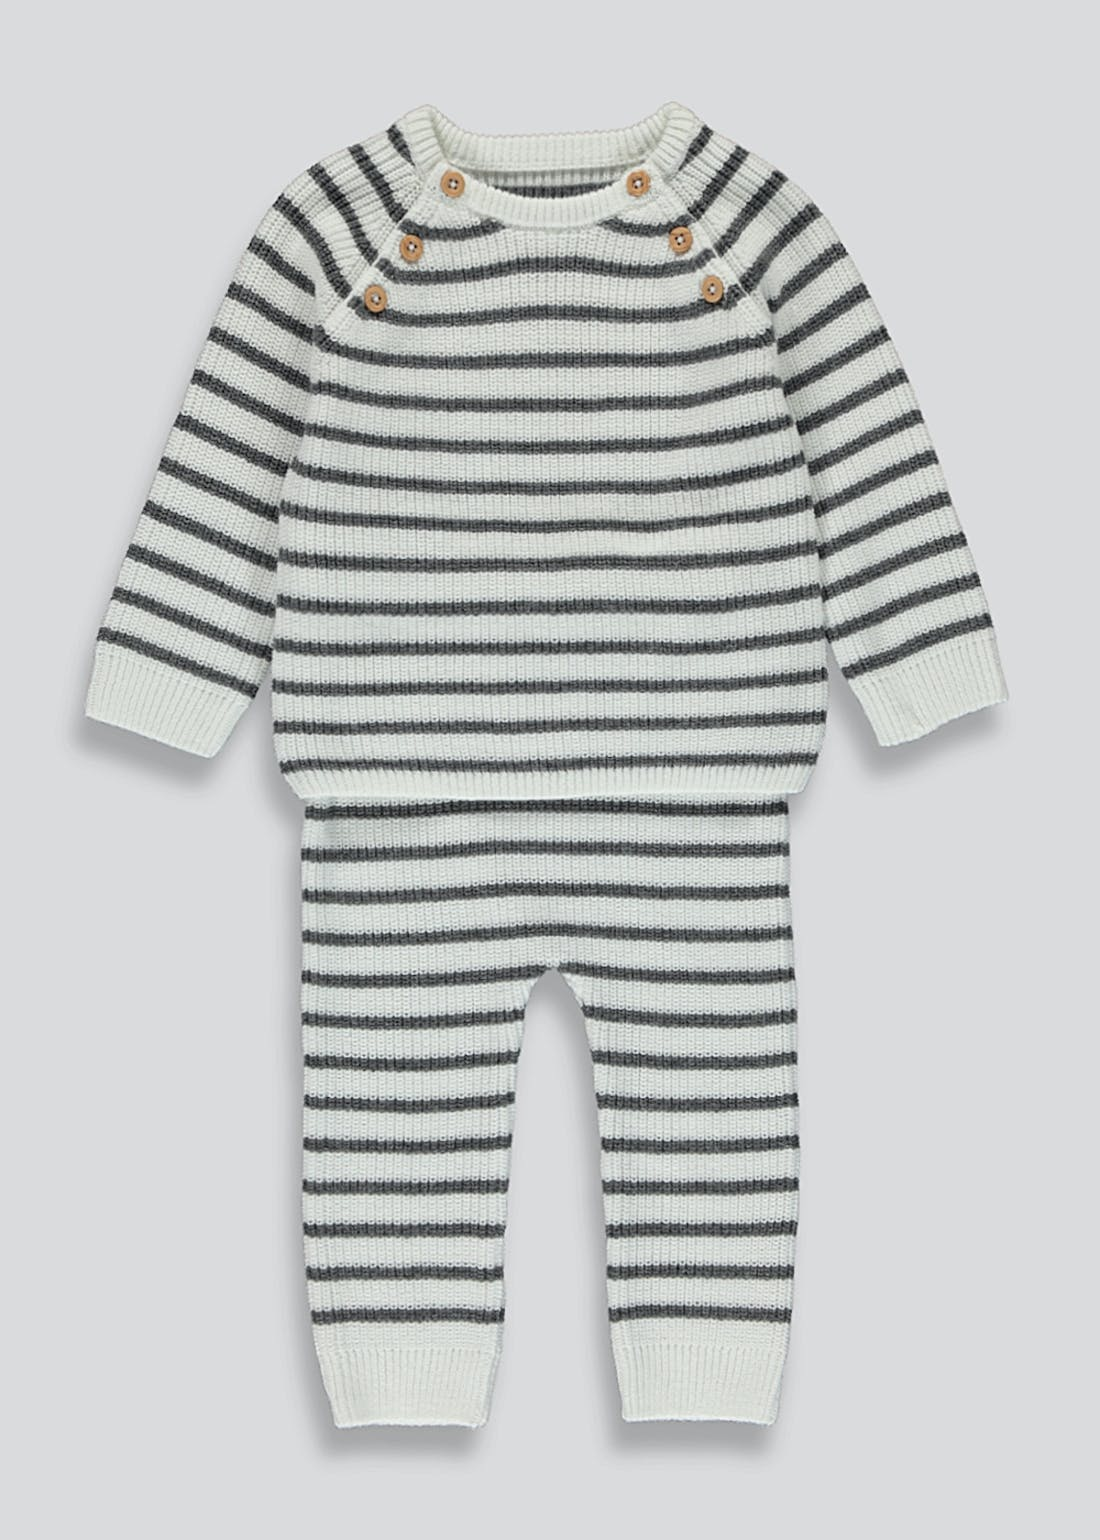 Unisex Knitted Stripe Set (Tiny Baby-23mths)